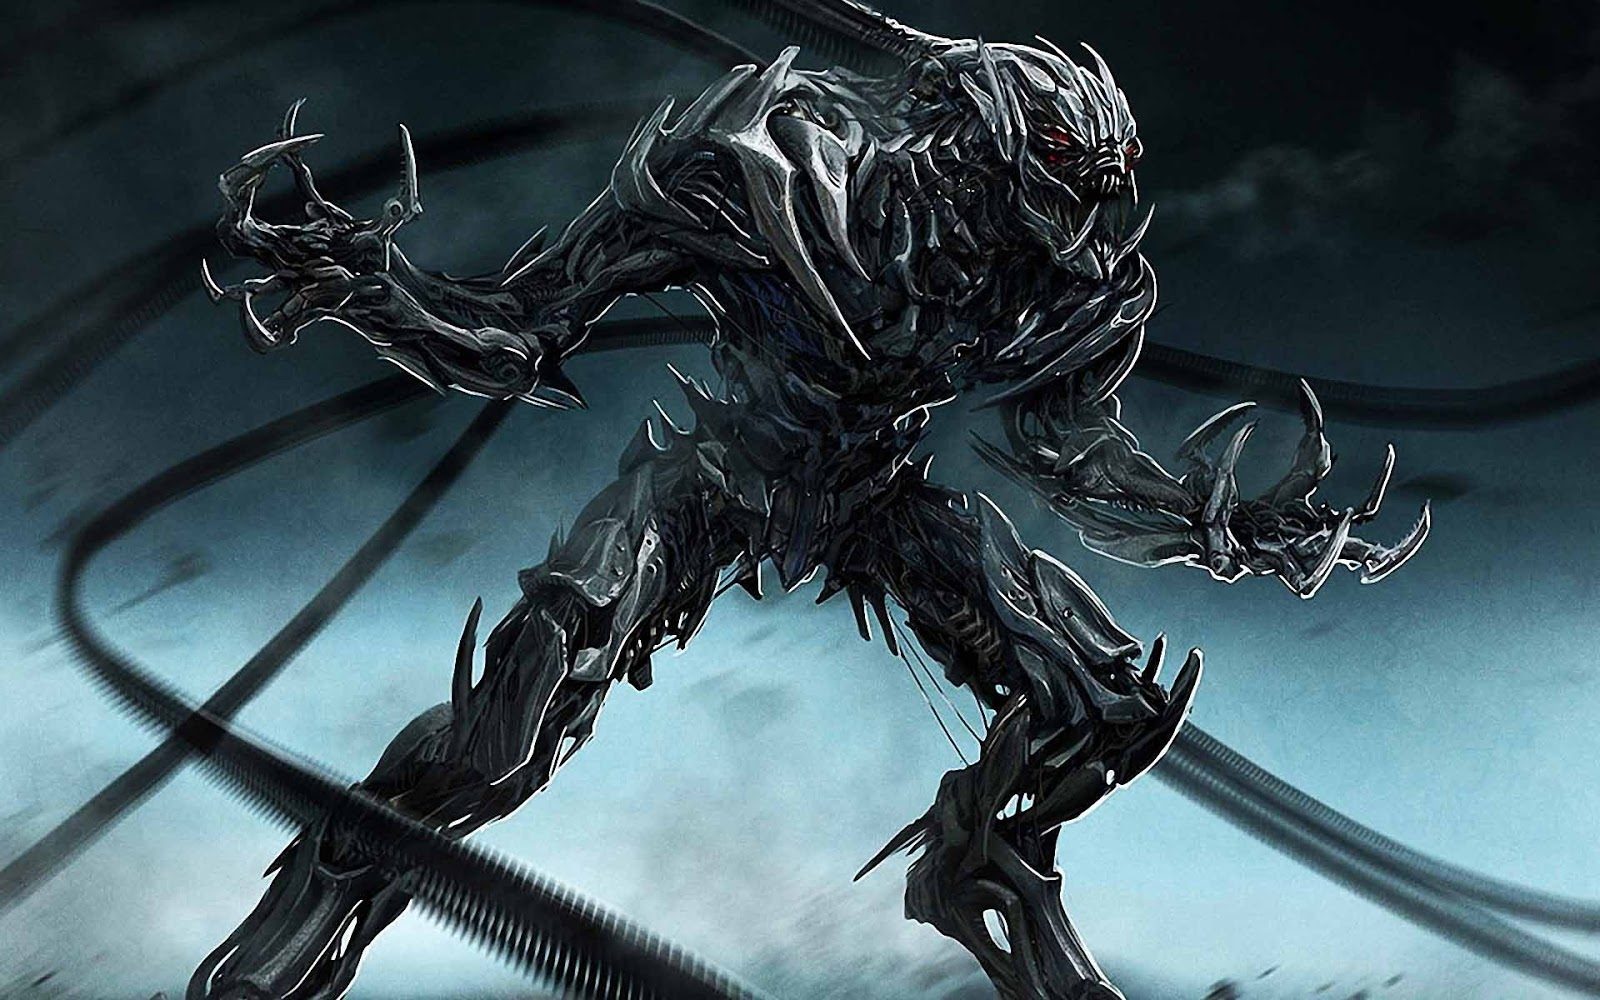 3d High Definition Wallpapers Hd Wallpapers 3d Monster Wallpapers